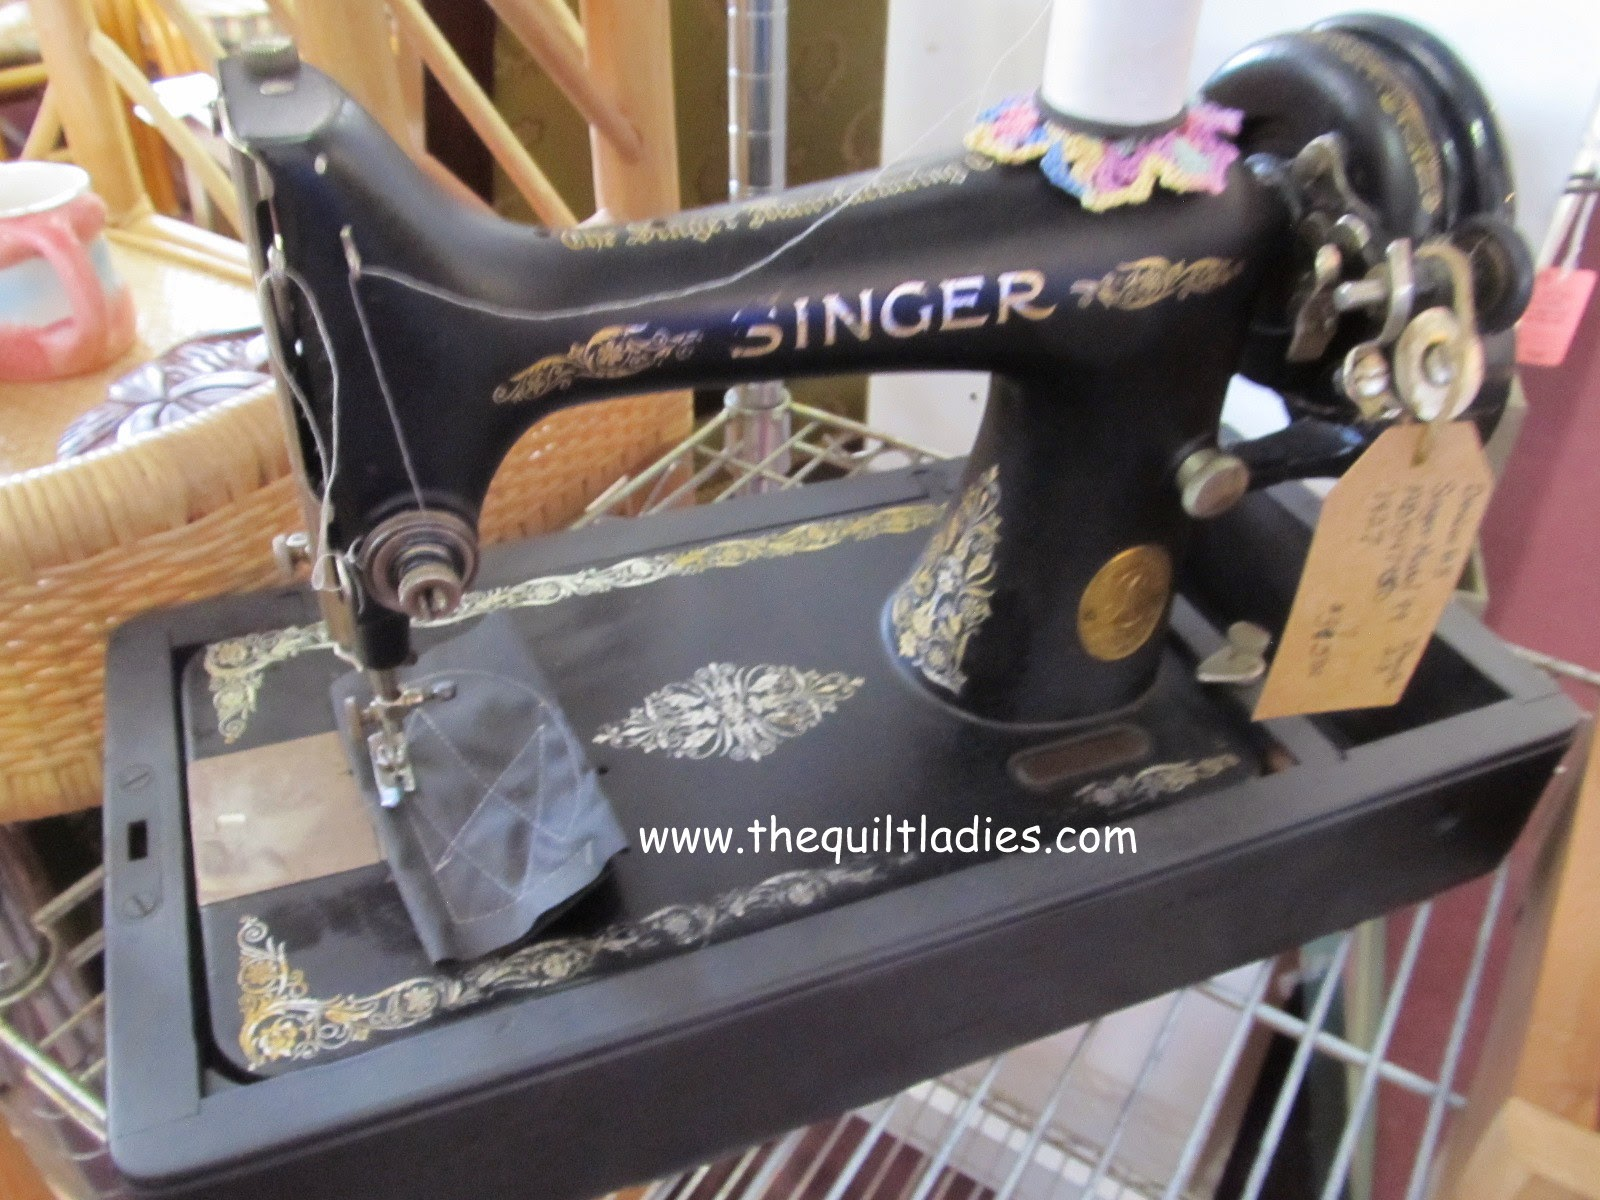 Little Singer Sewing Machine